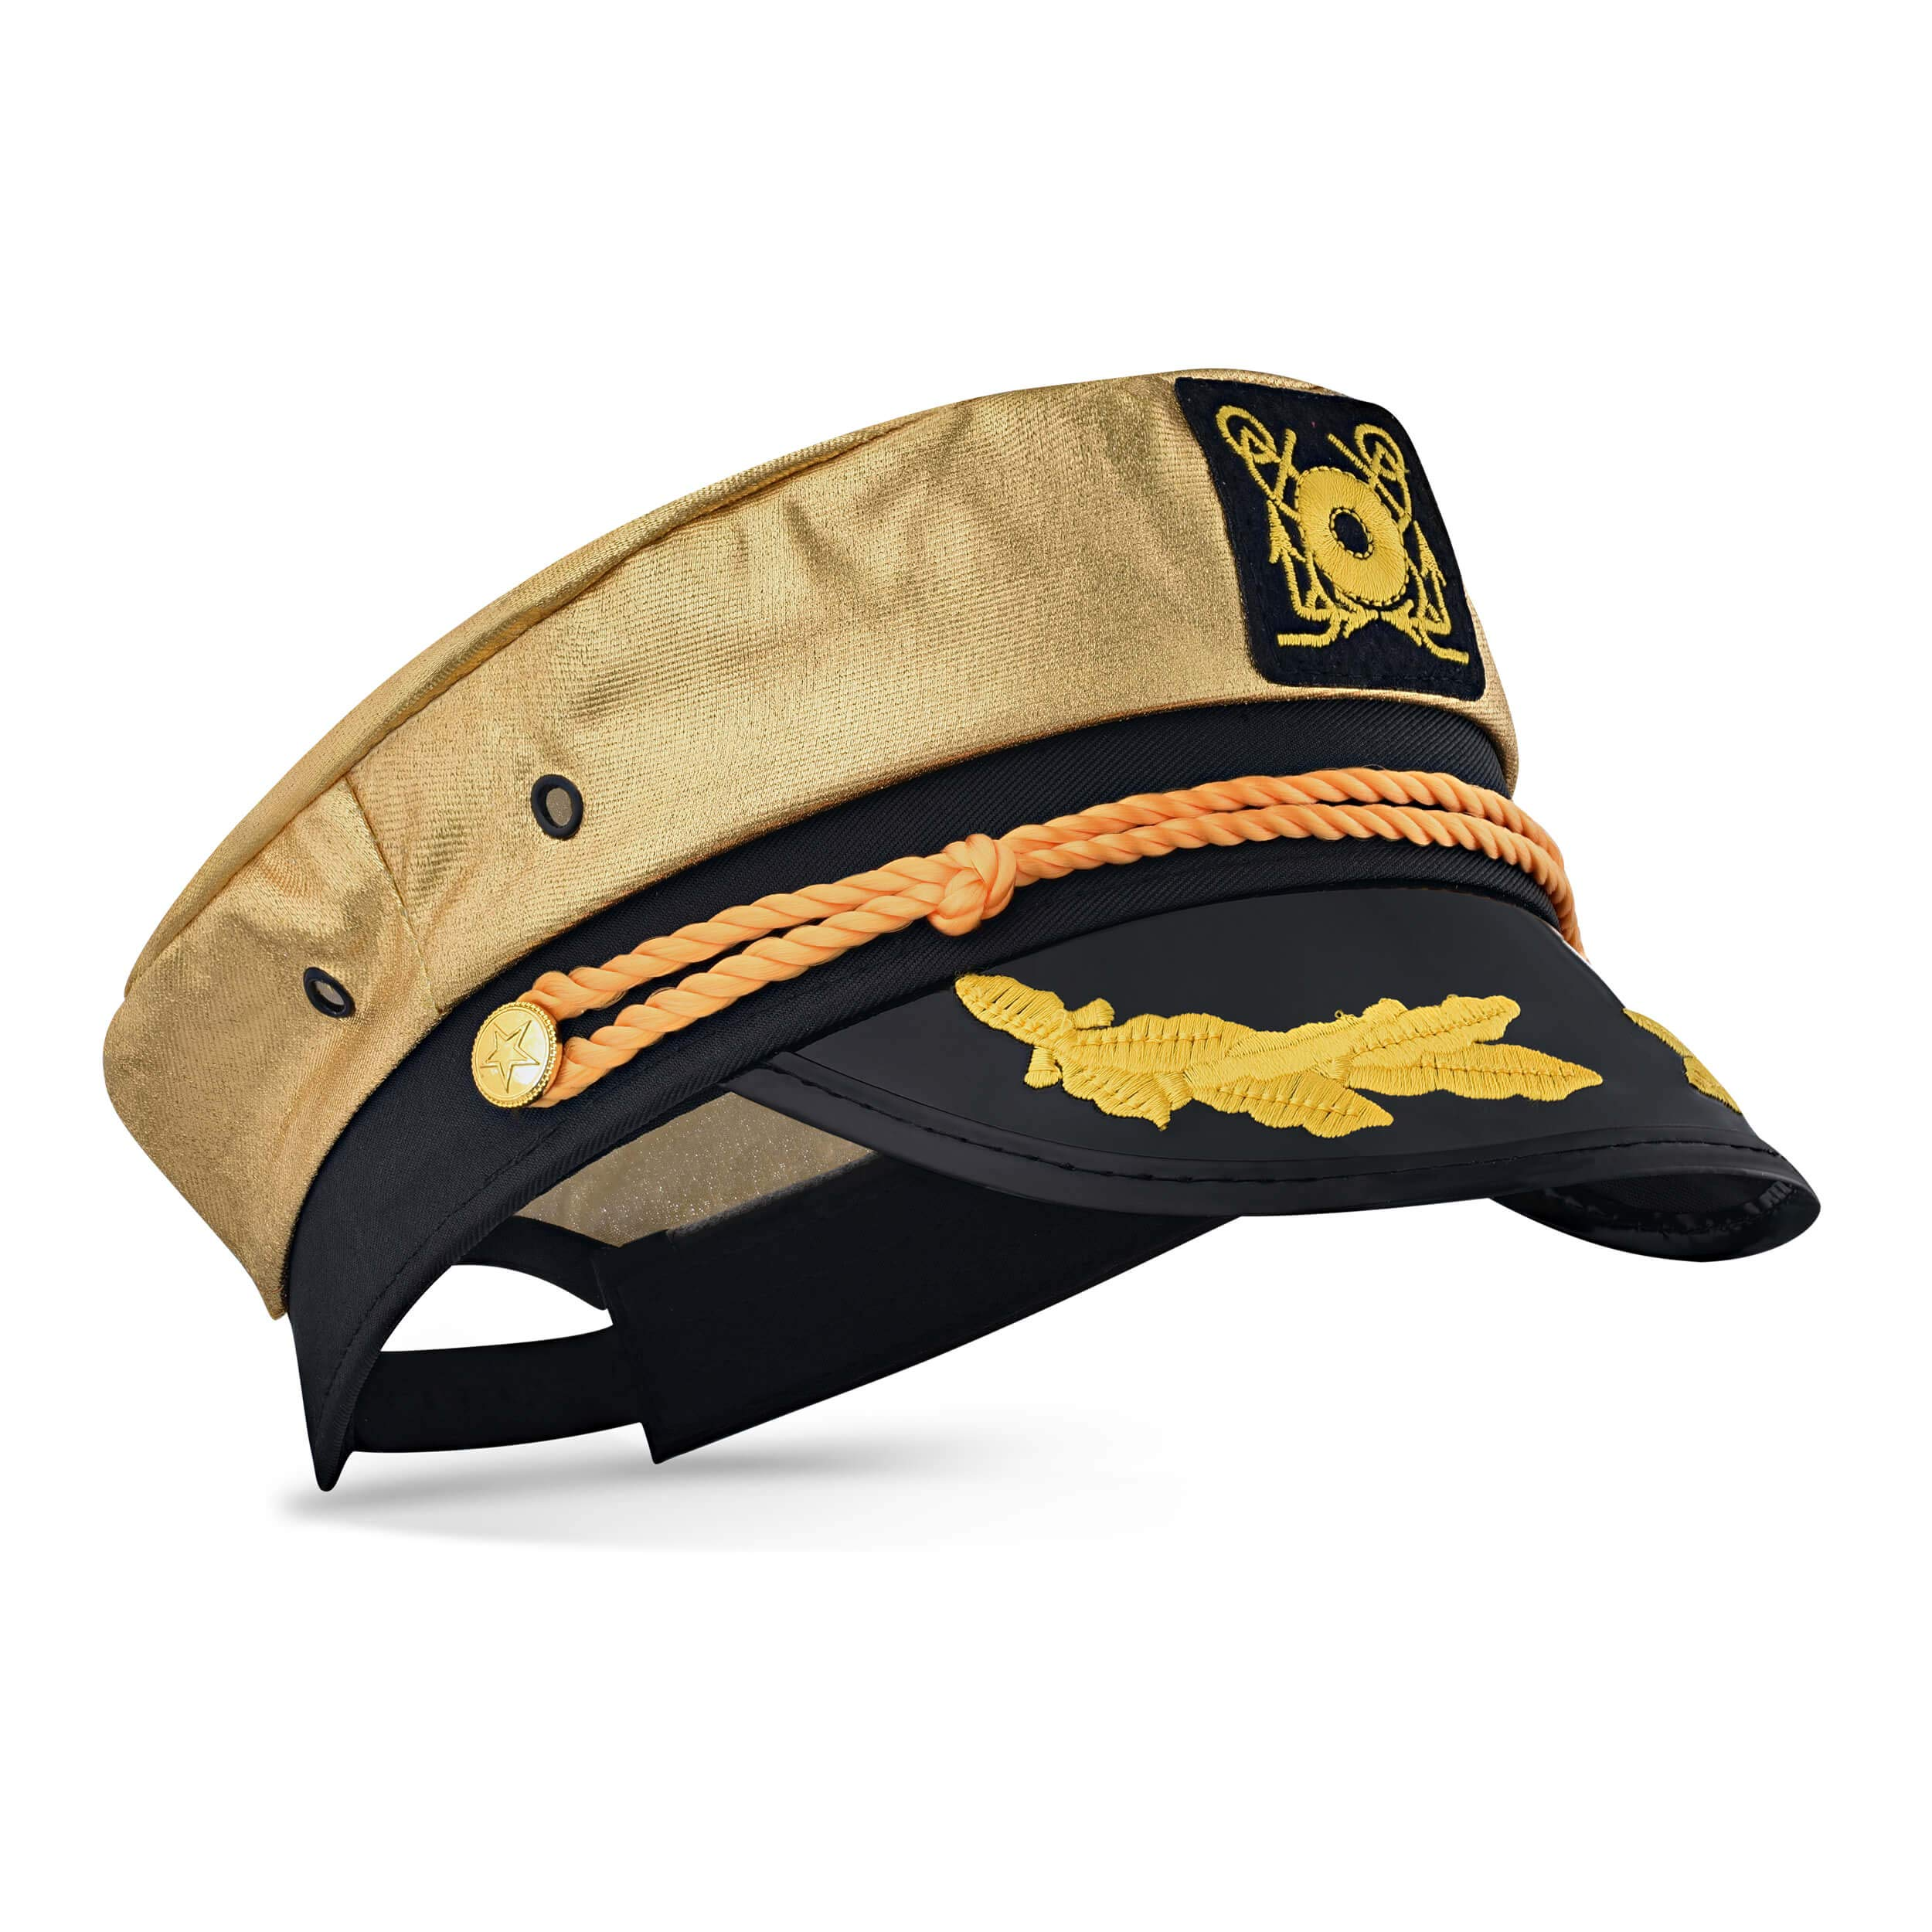 Captain Ford's Unisex Snapback Neon Captain Hat - Perfect for Parties (Gold) by Captain Ford Retail Inc